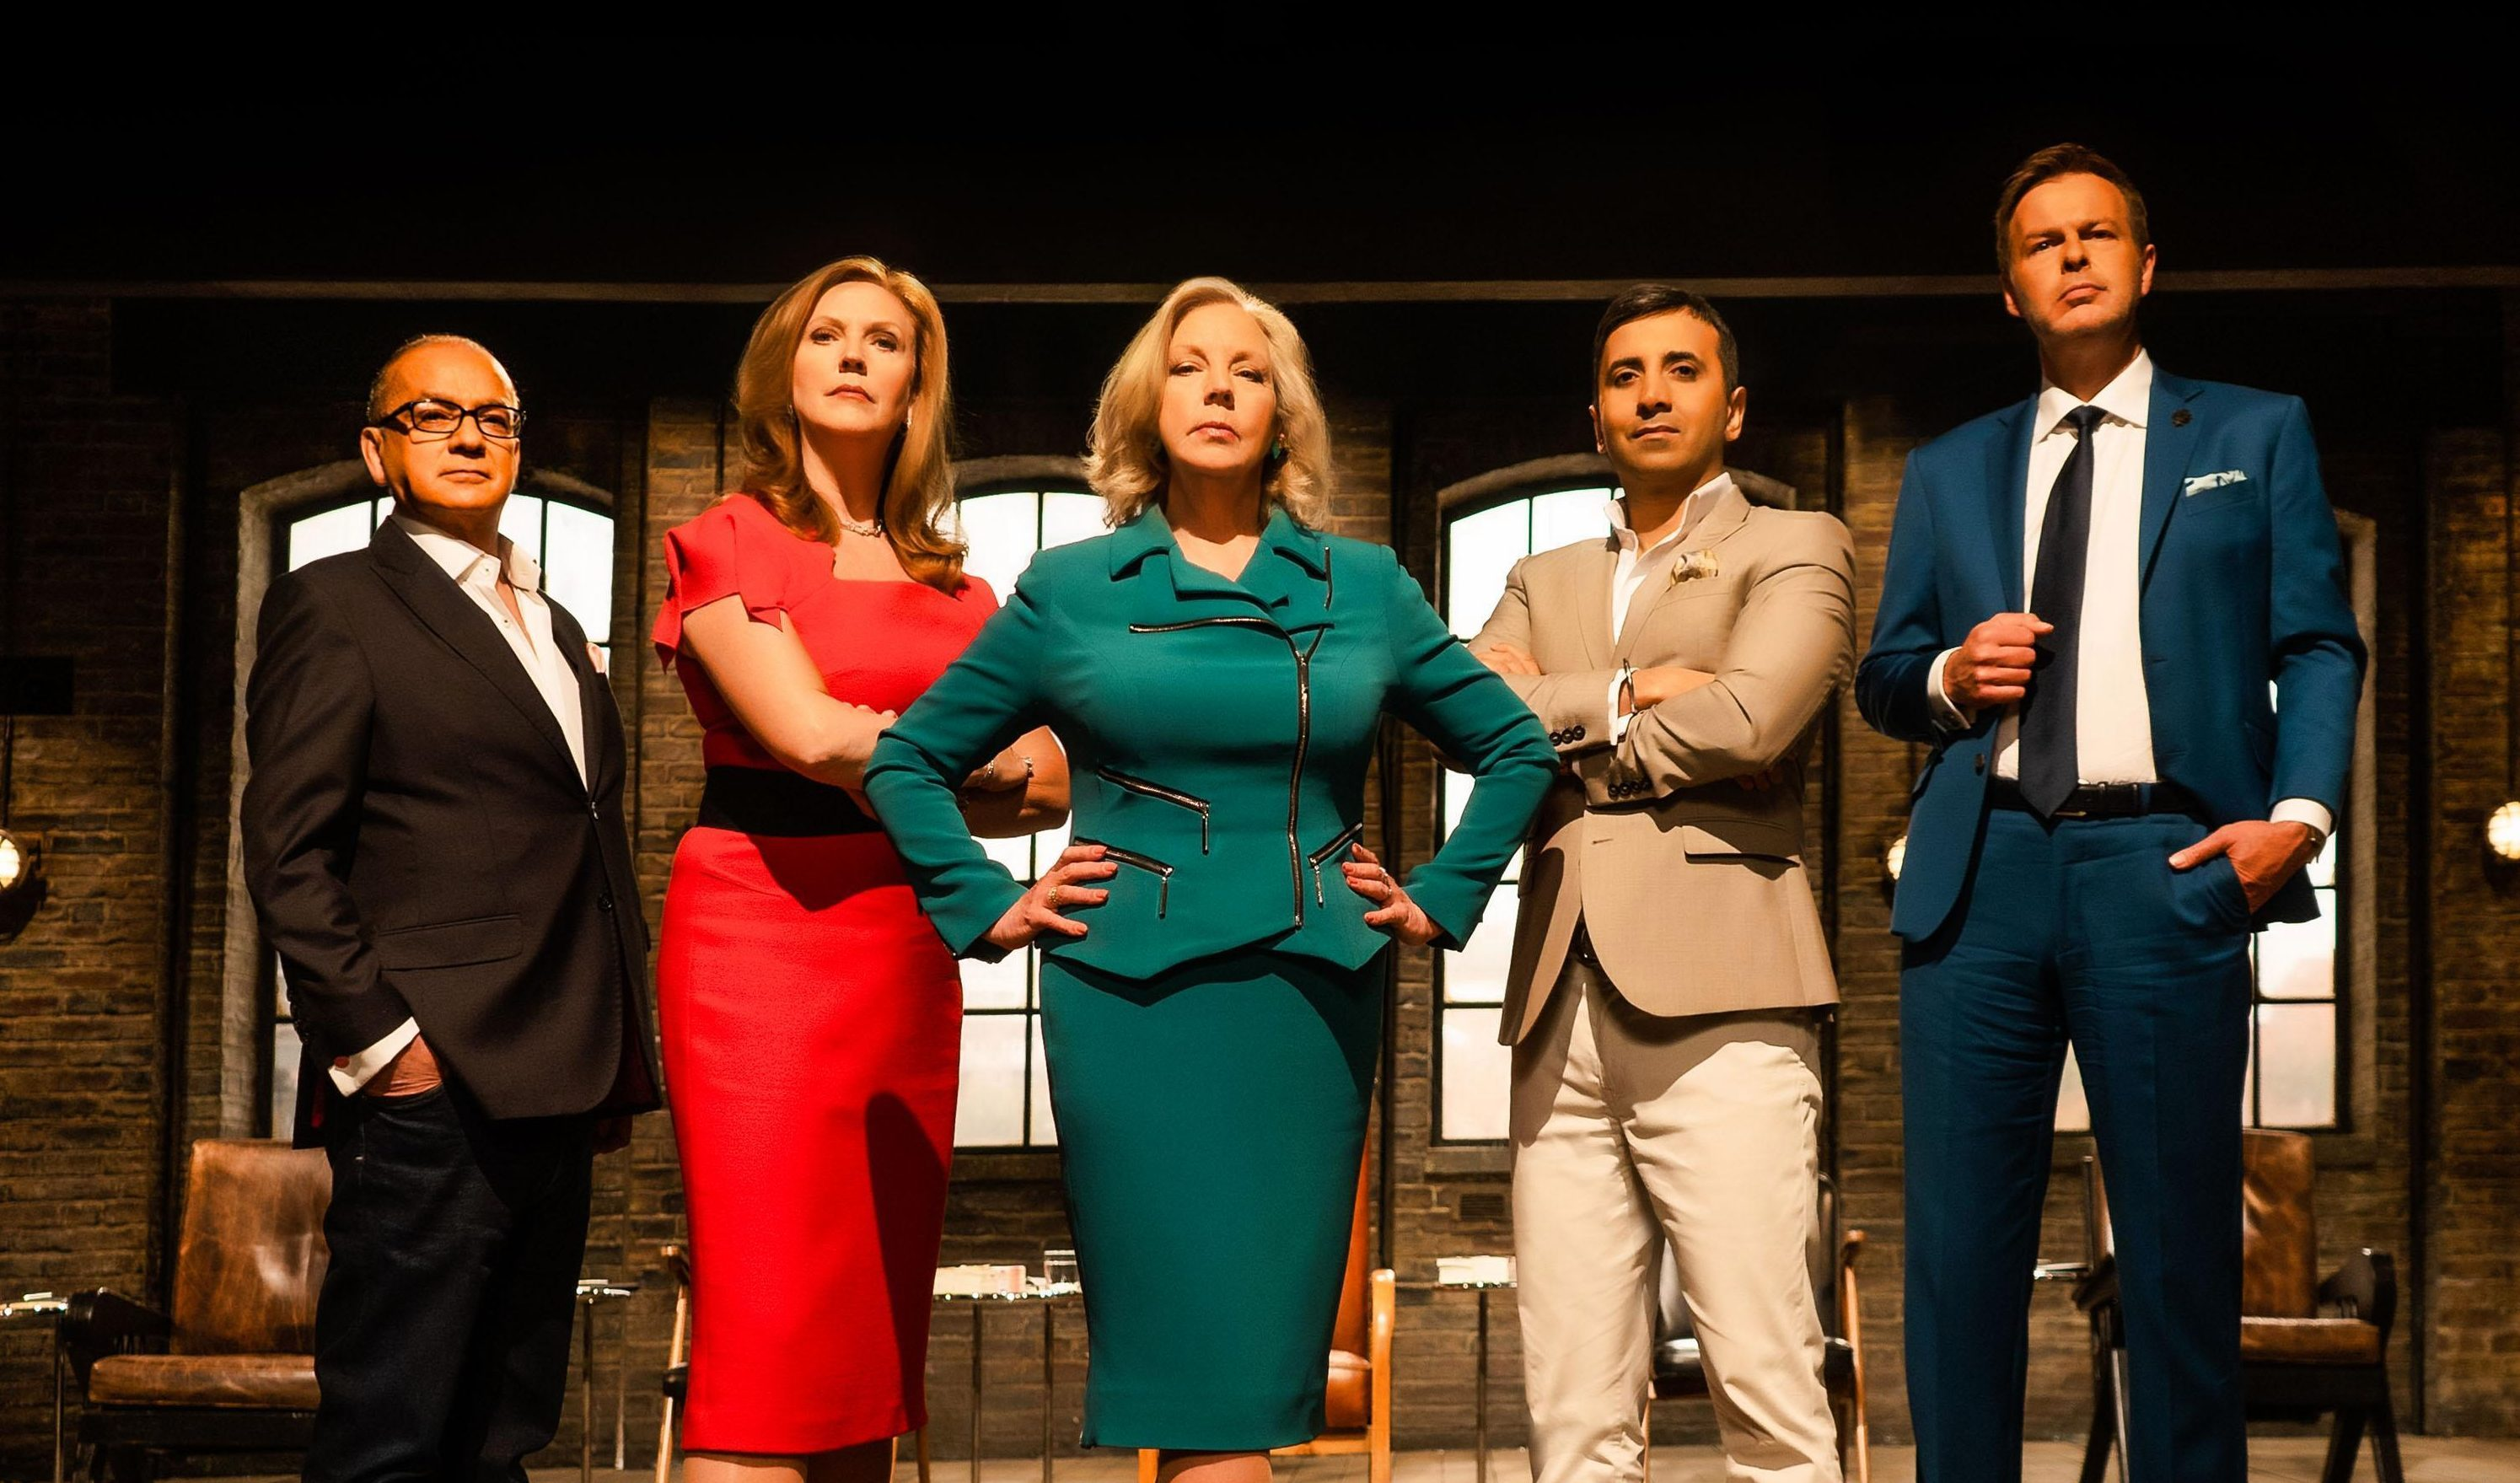 When is the Dragon's Den Christmas special on BBC2 and who are the investors?